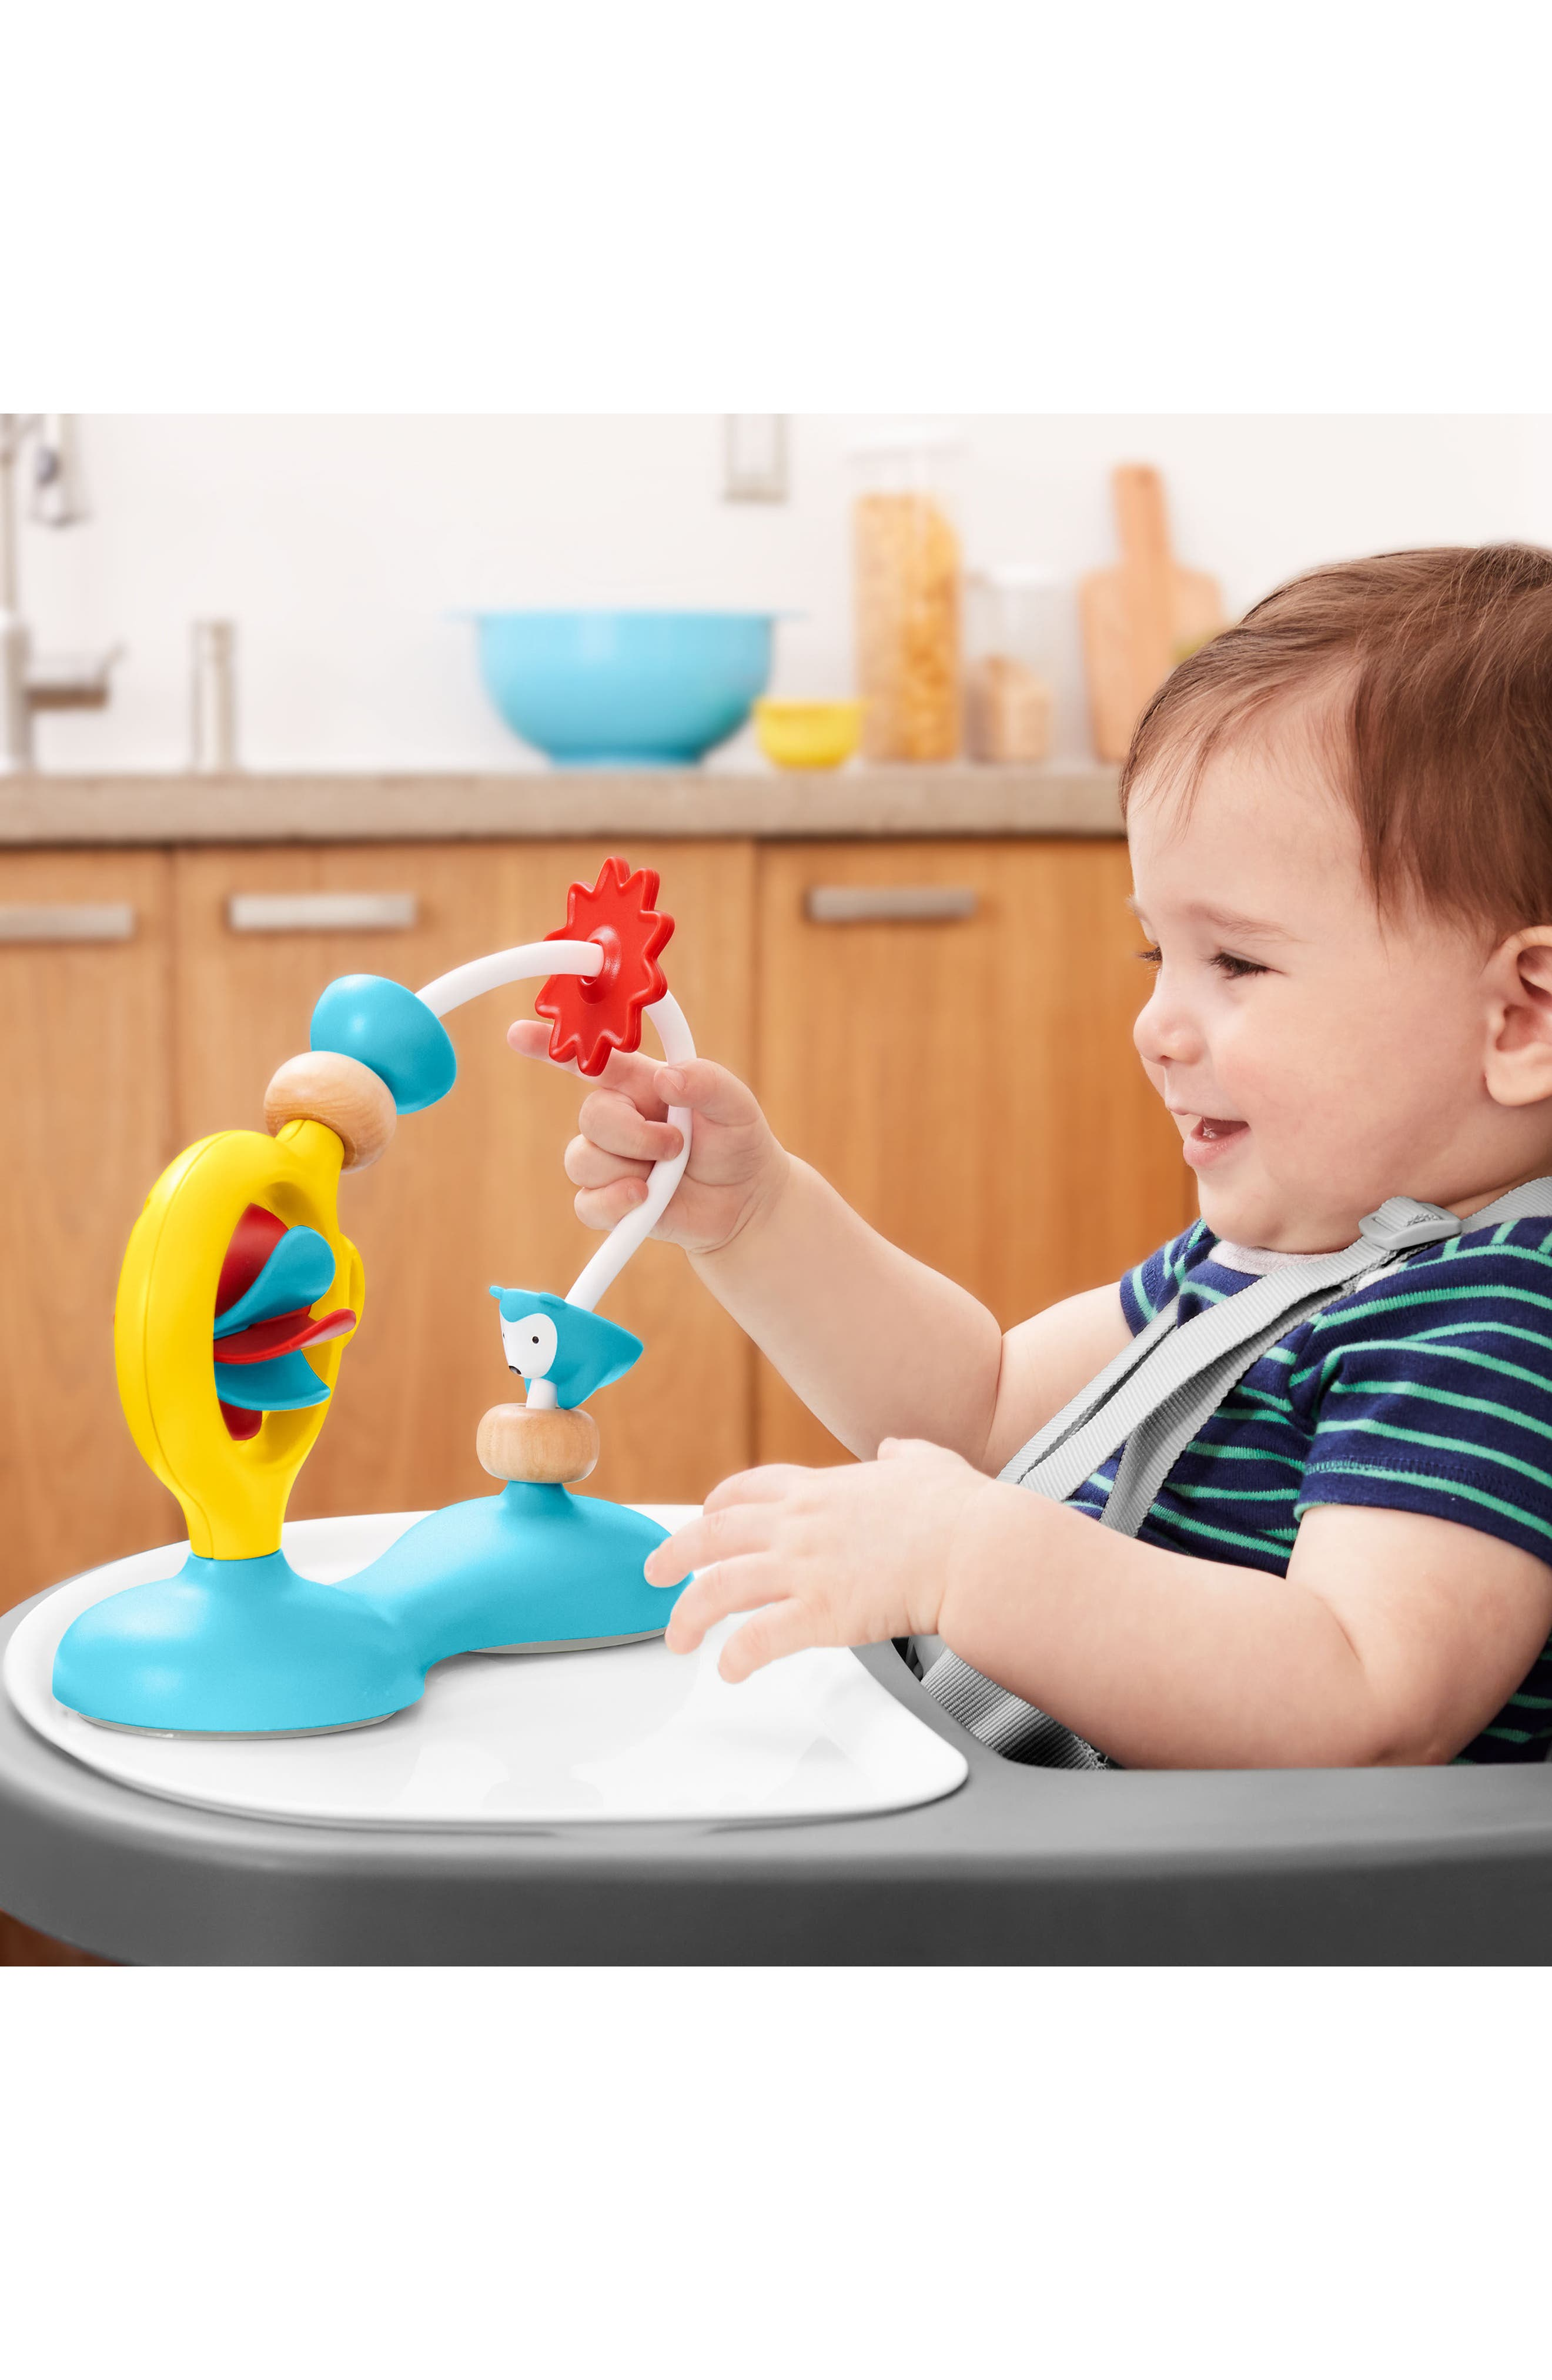 Explore N More Bead Mover Highchair Toy,                             Alternate thumbnail 4, color,                             Bead Mover